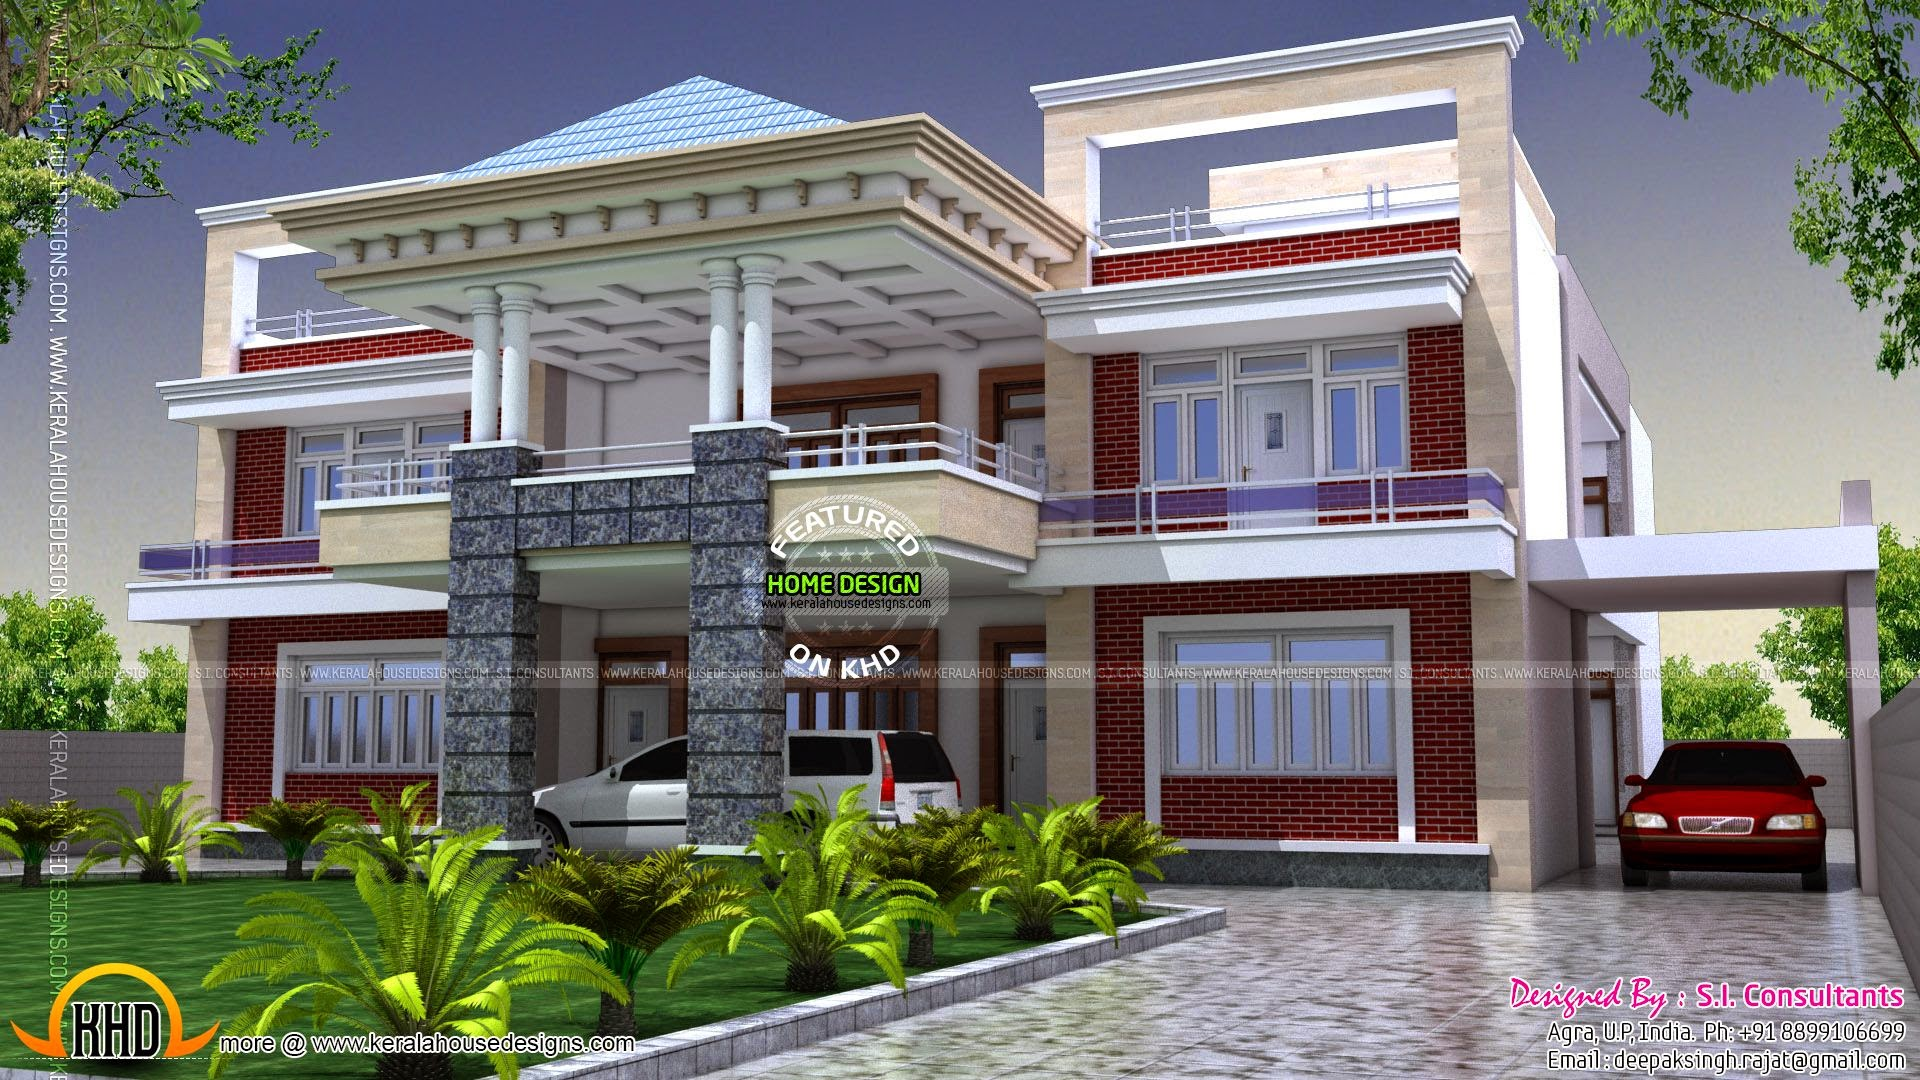 North indian luxury house kerala home design and floor plans for Indian house designs and floor plans